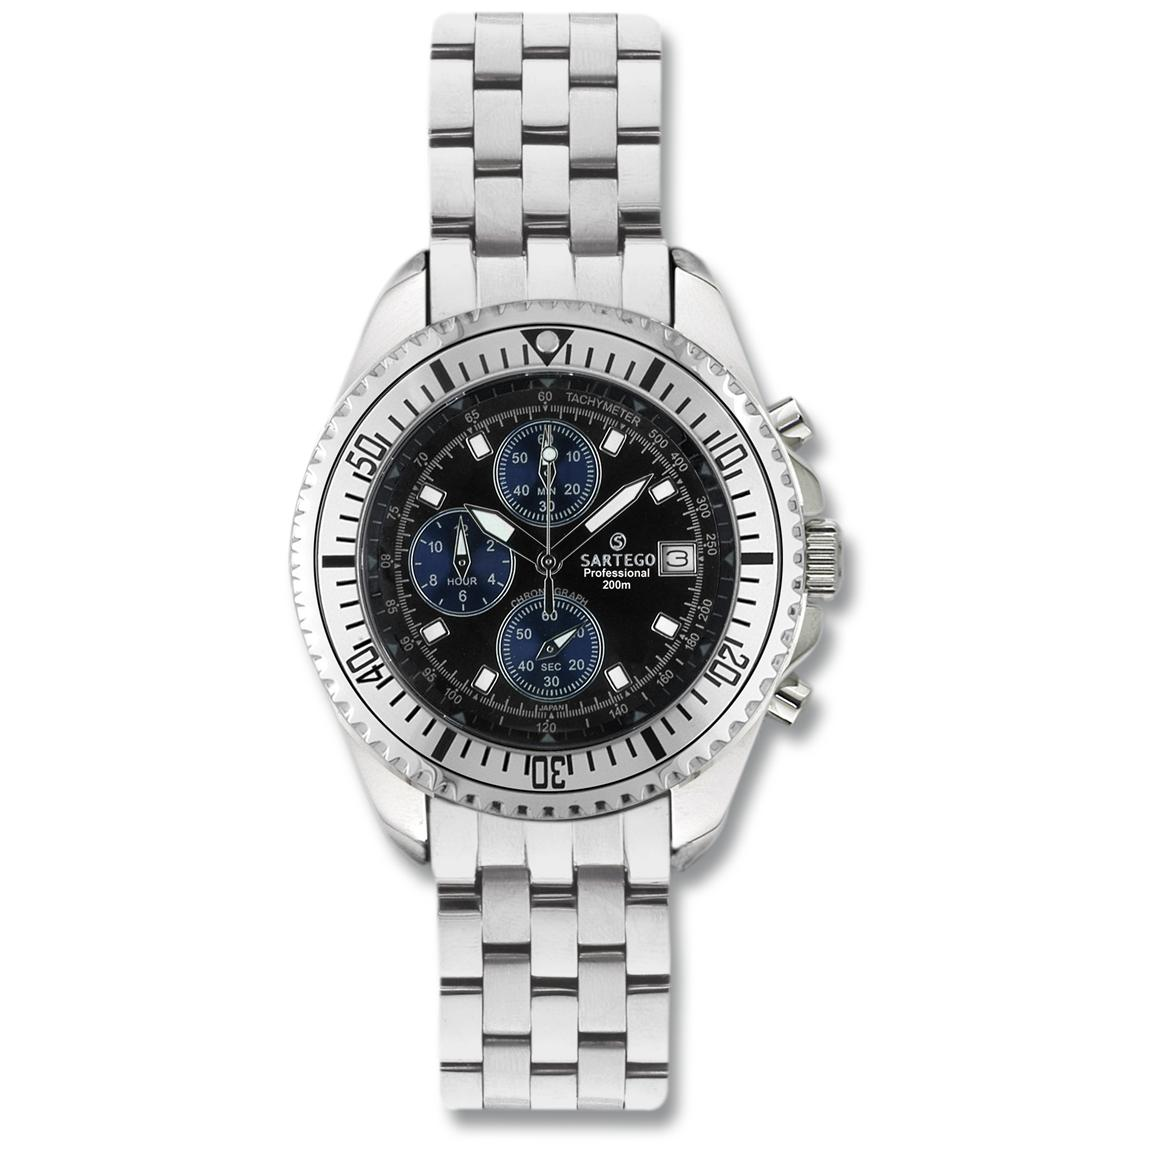 Men's Sartego® Ocean Master Chronograph Watch with Three Subdials, Black Dial